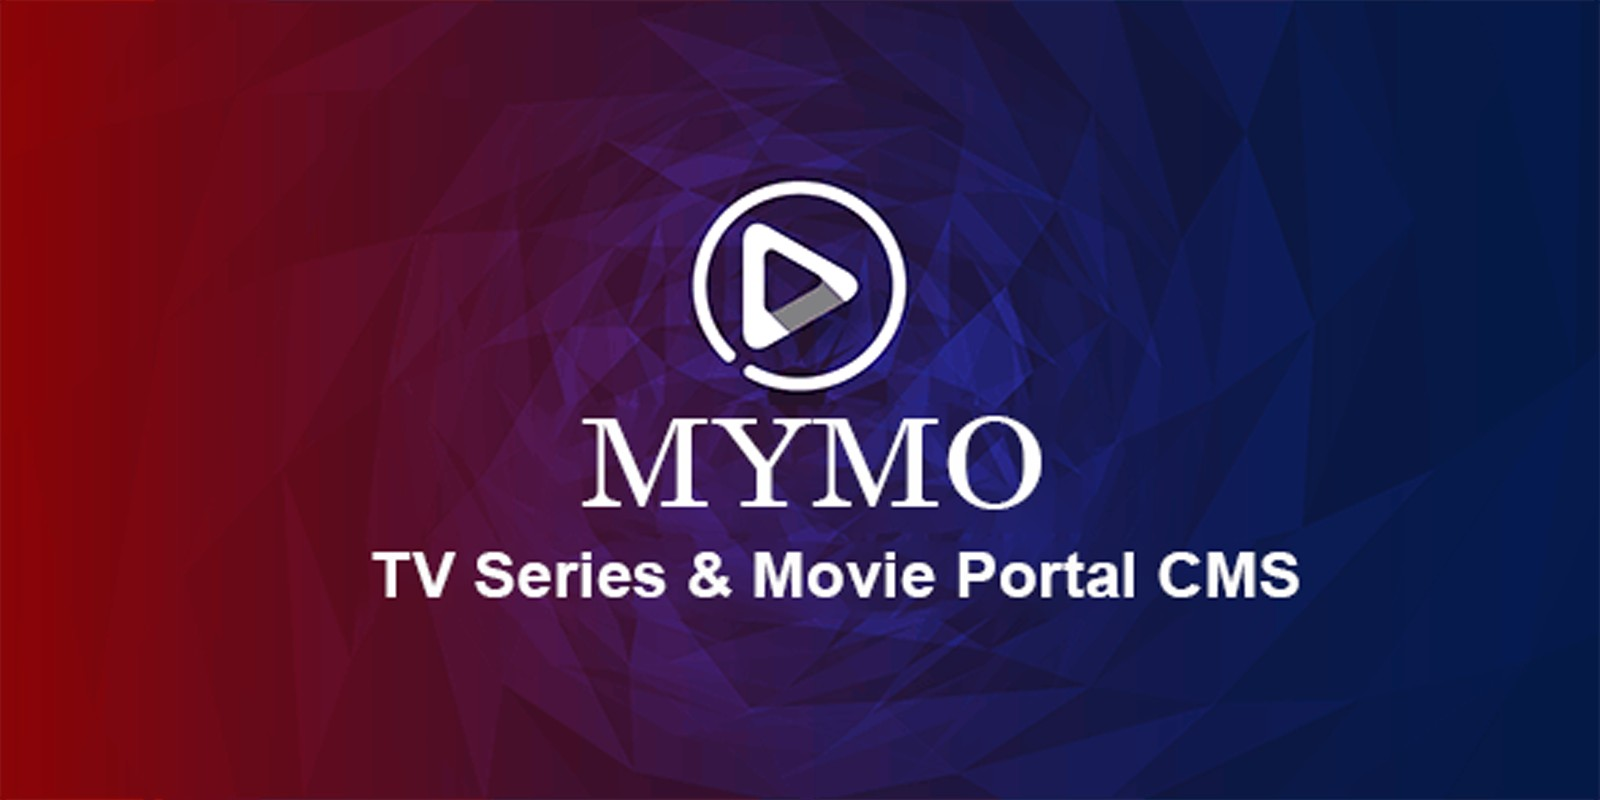 MYMO - TV Series And Movie Portal CMS Unlimited